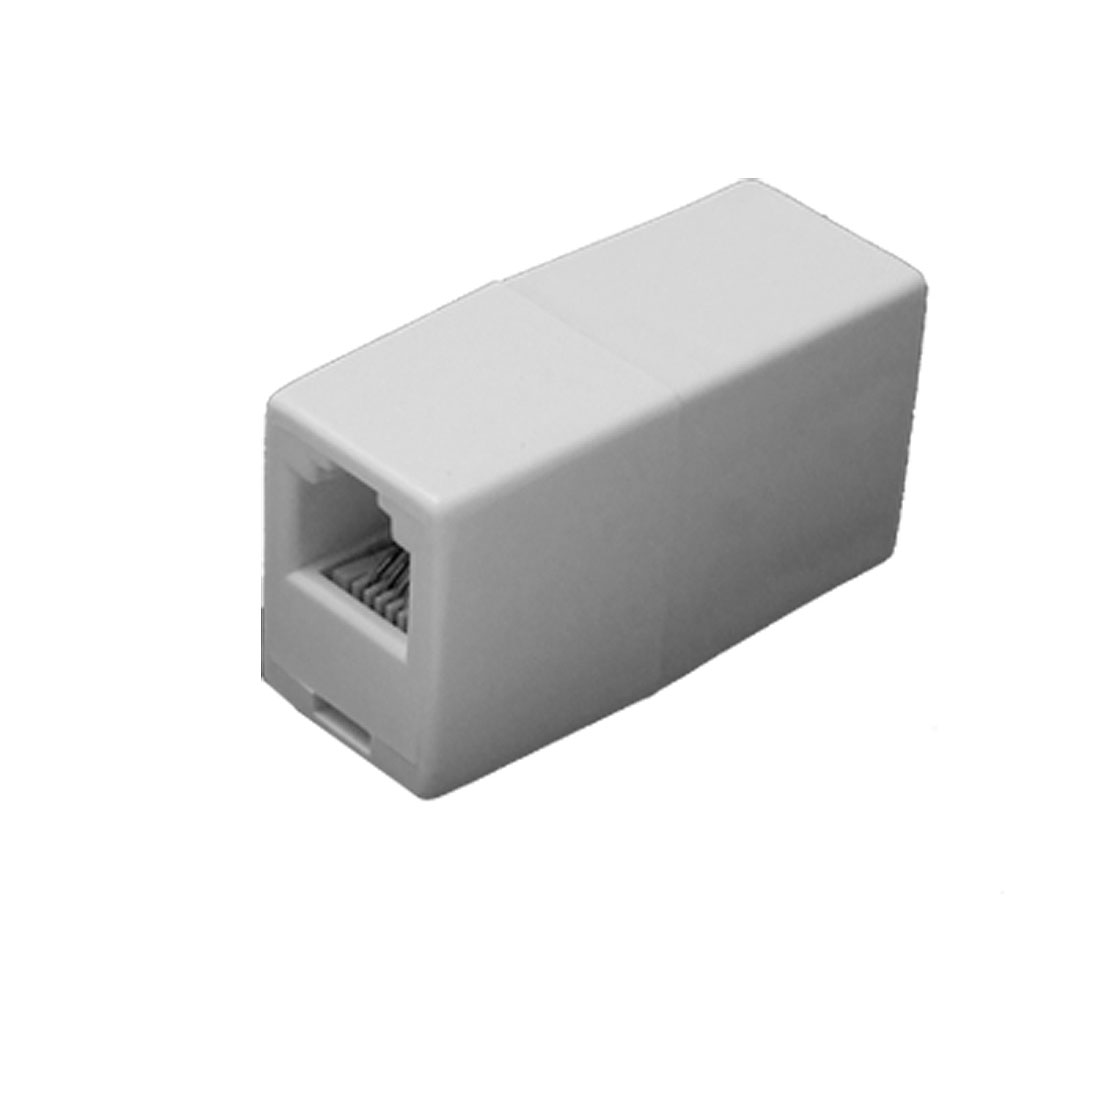 UK BT Telephone to RJ11 Socket Adapter Convertor Converter